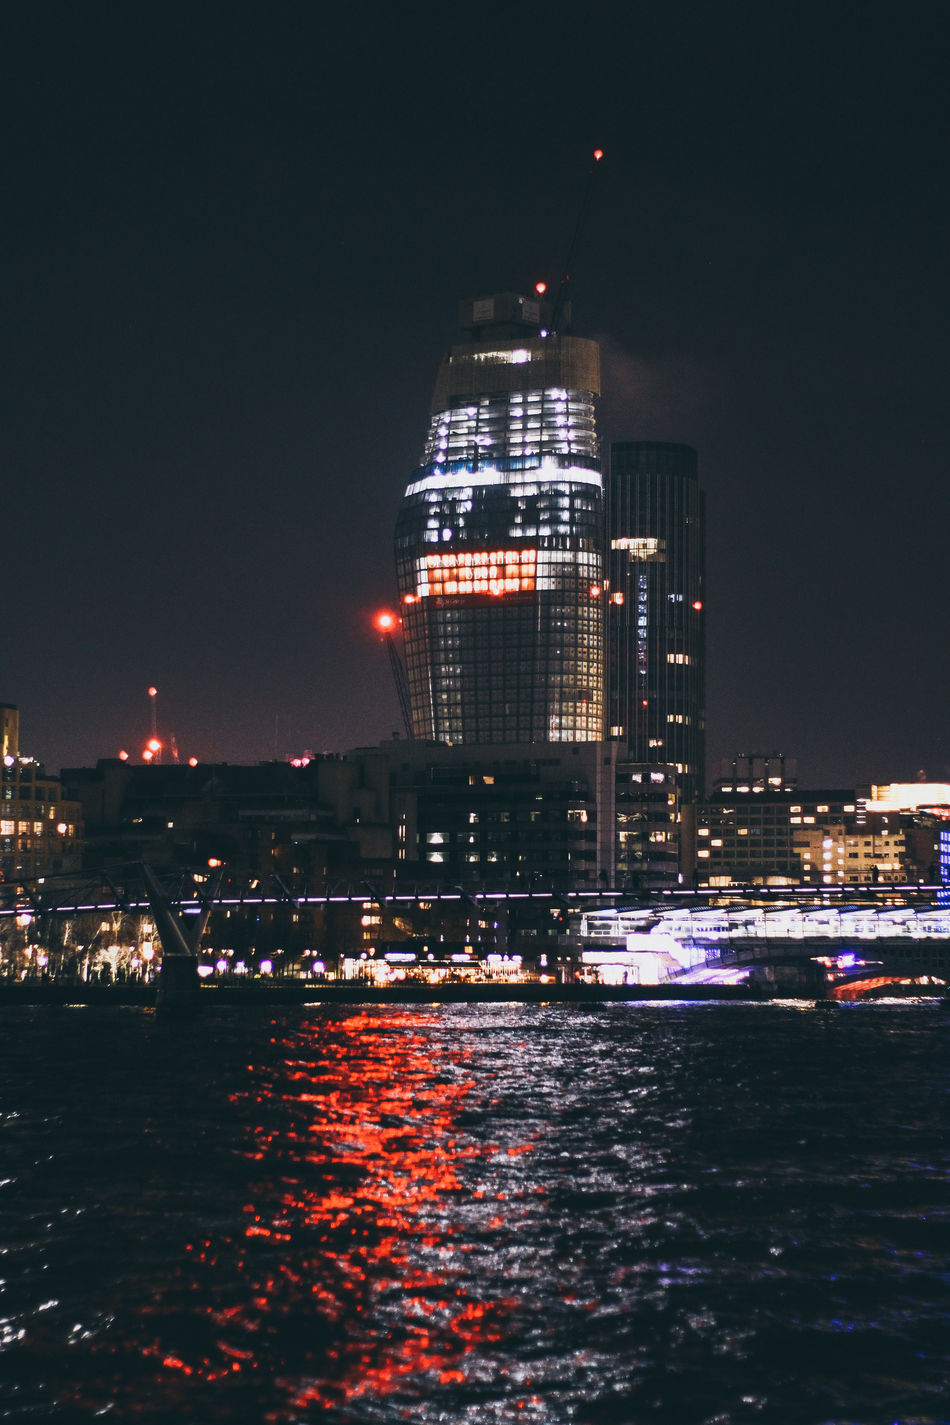 One Blackfriars Night City Water Sky Architecture Skyscraper Business Finance And Industry Office Building Exterior Lights River London Lithuanian Street Photography Architecture Tones Of Colour Urban Built Structure Urban Skyline Streetphotography Travel Blackfriars